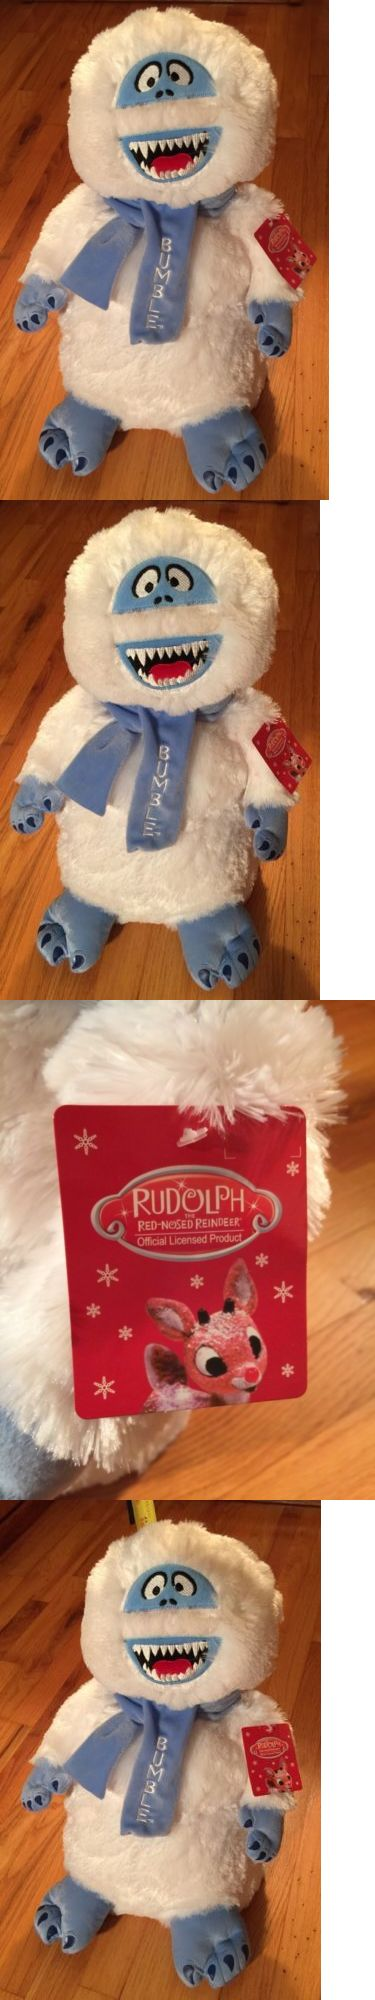 Rudolph 95252: New Bumble Abominable Snowman 17 Stuffed Plush Greeter Stand Rudolph Red Nosed -> BUY IT NOW ONLY: $49.99 on eBay!